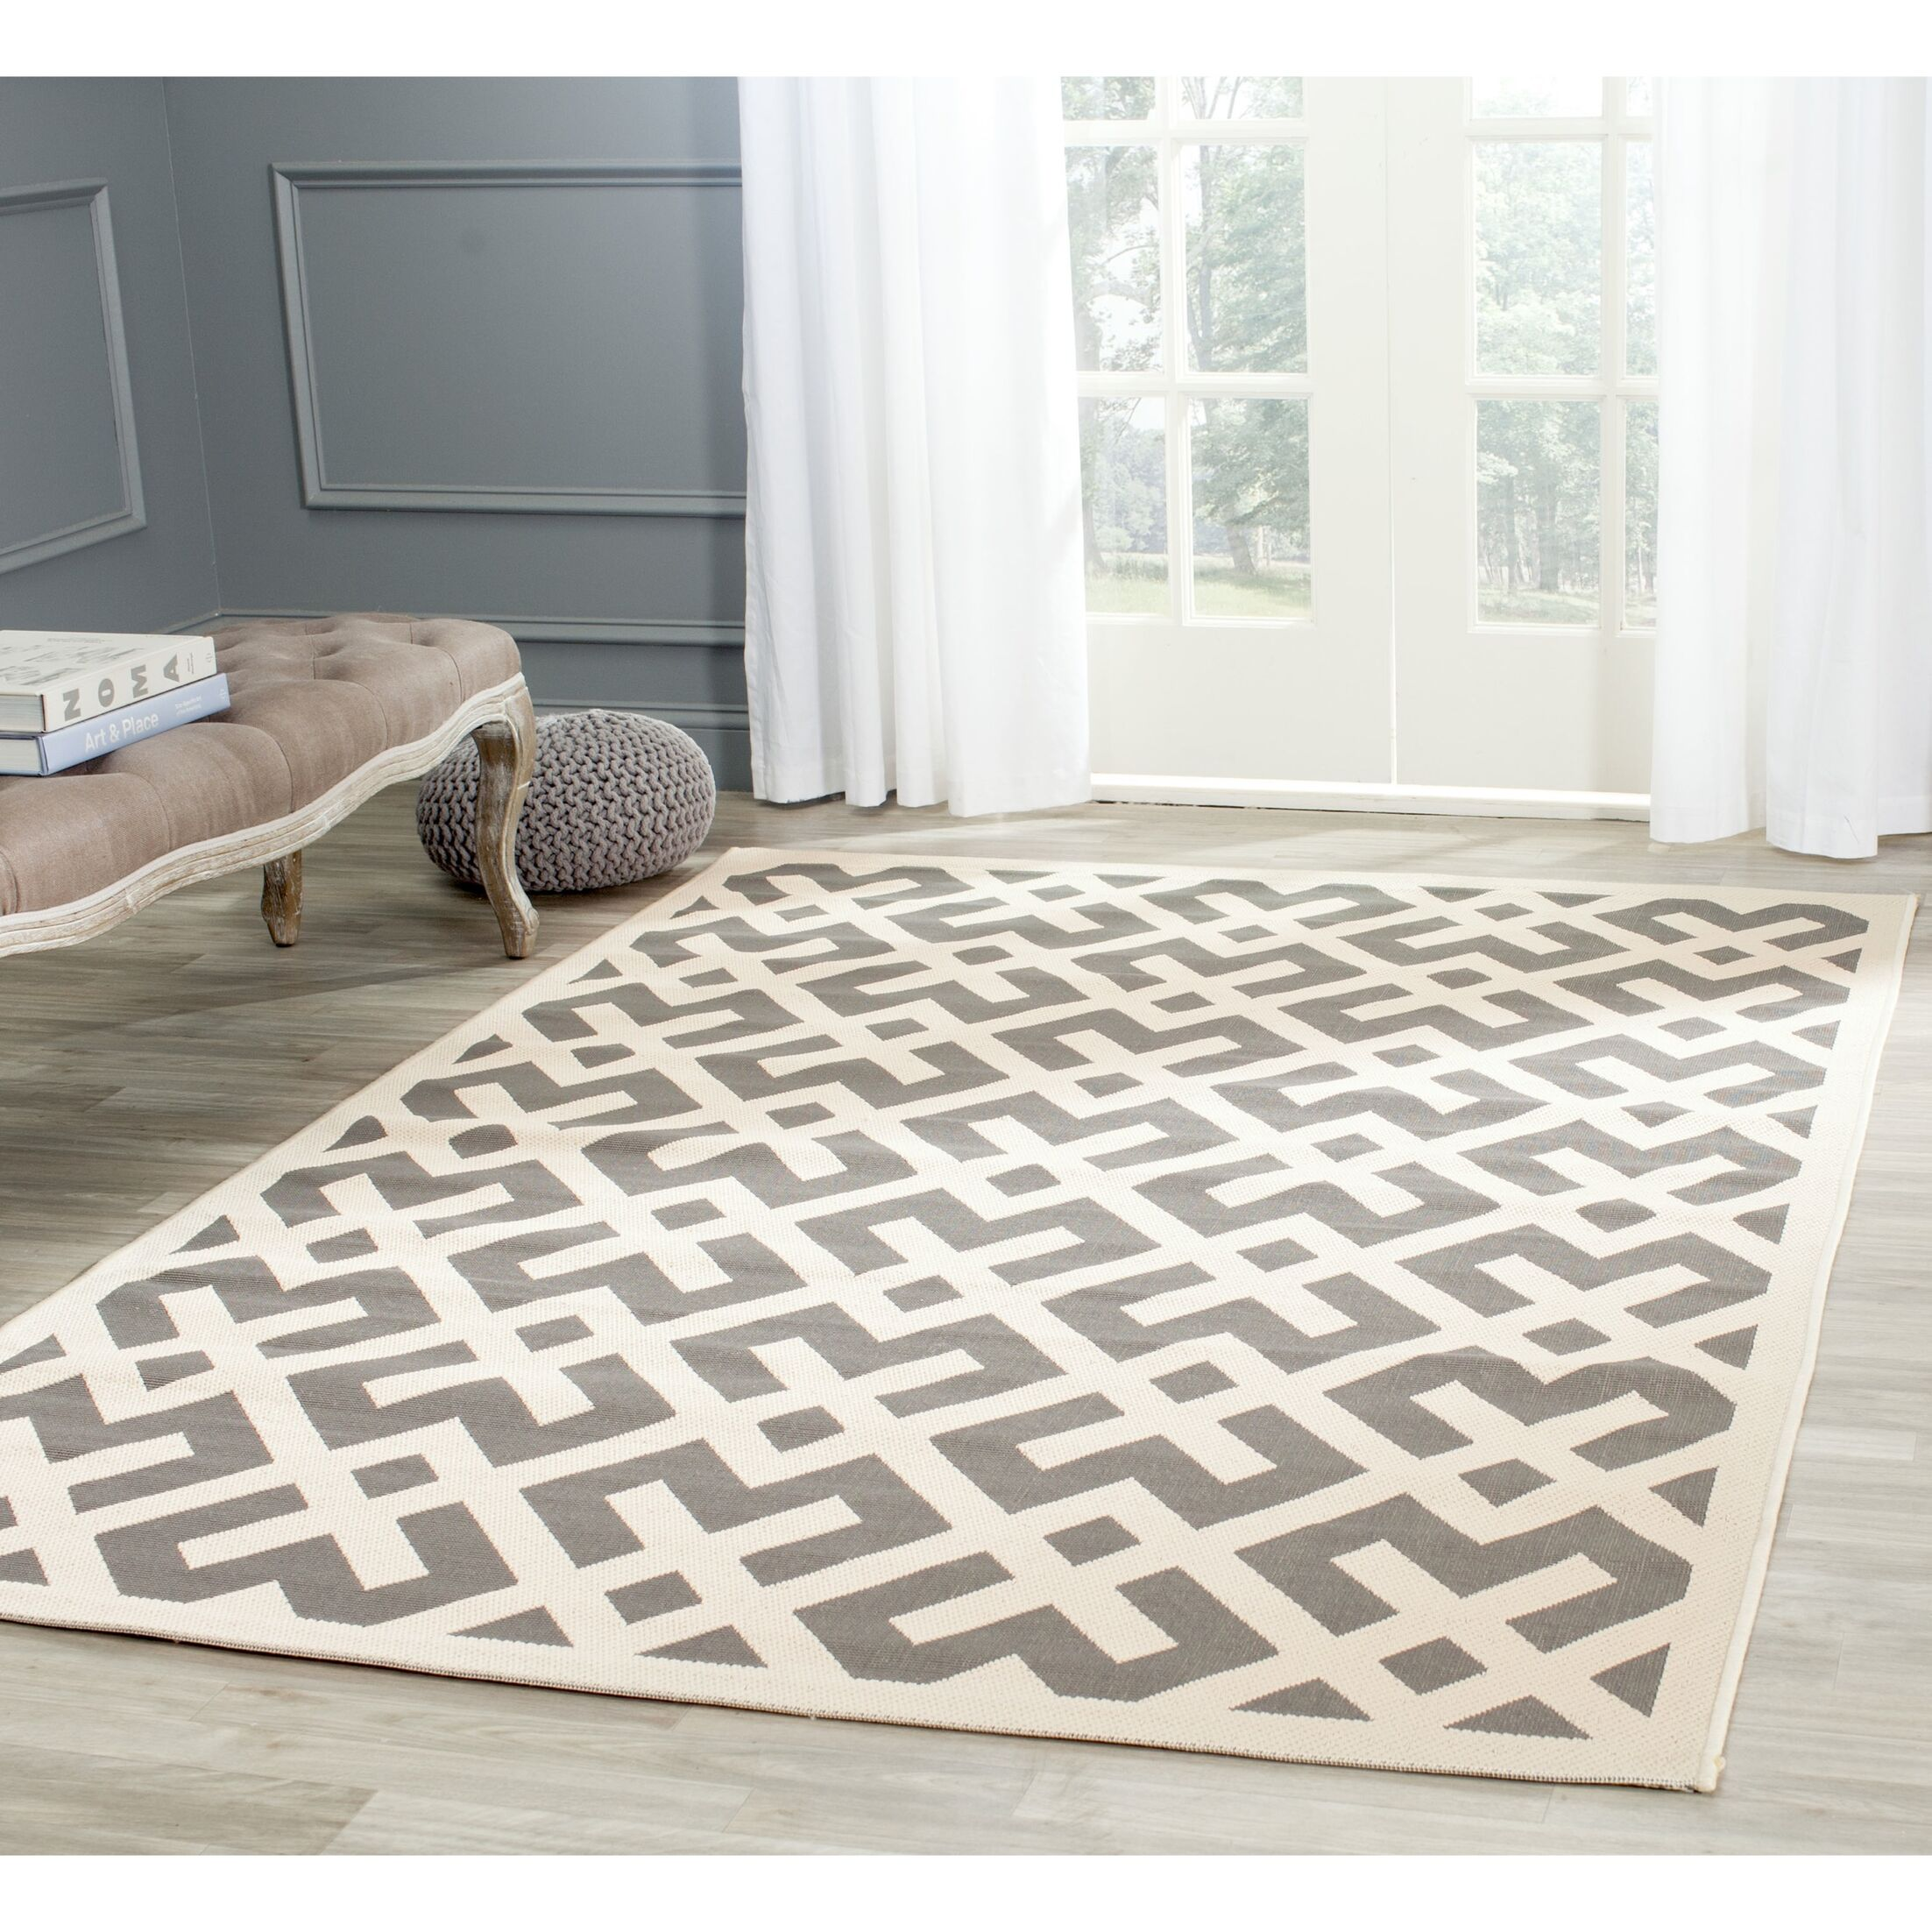 Mirabelle Gray/Bone Indoor/Outdoor Area Rug Rug Size: Square 7'10